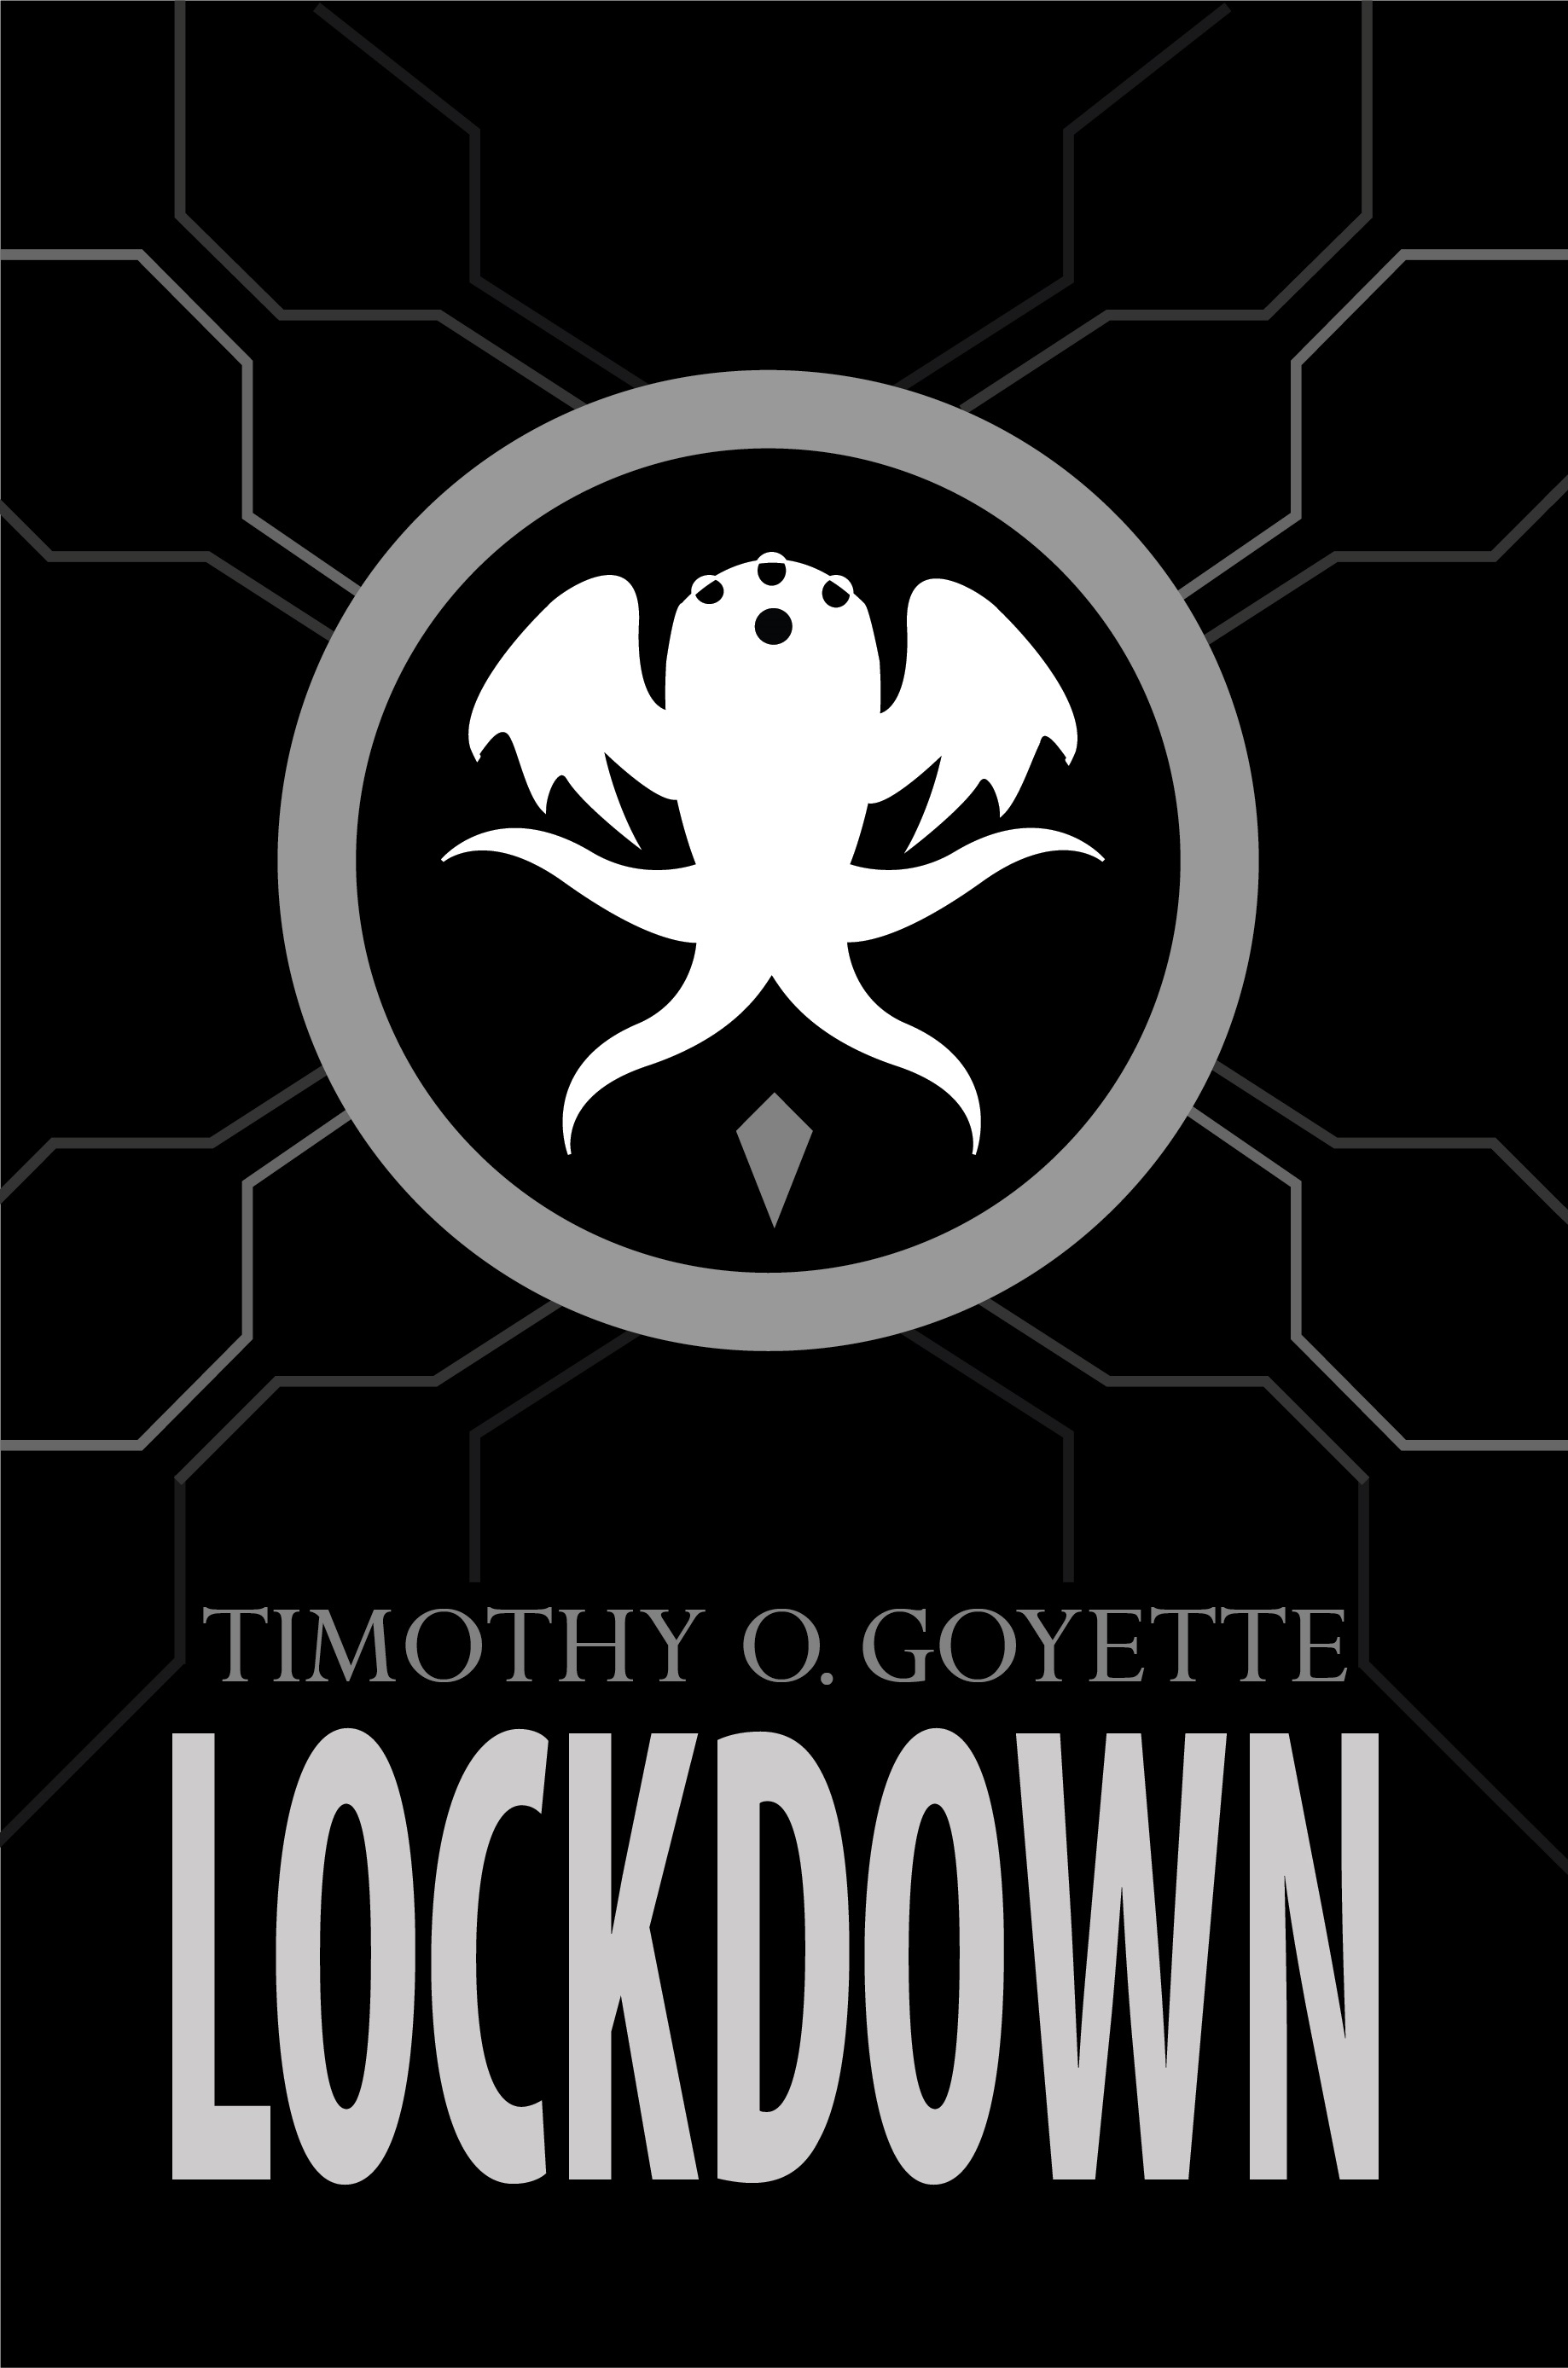 Lockdown by Timothy O. Goyette